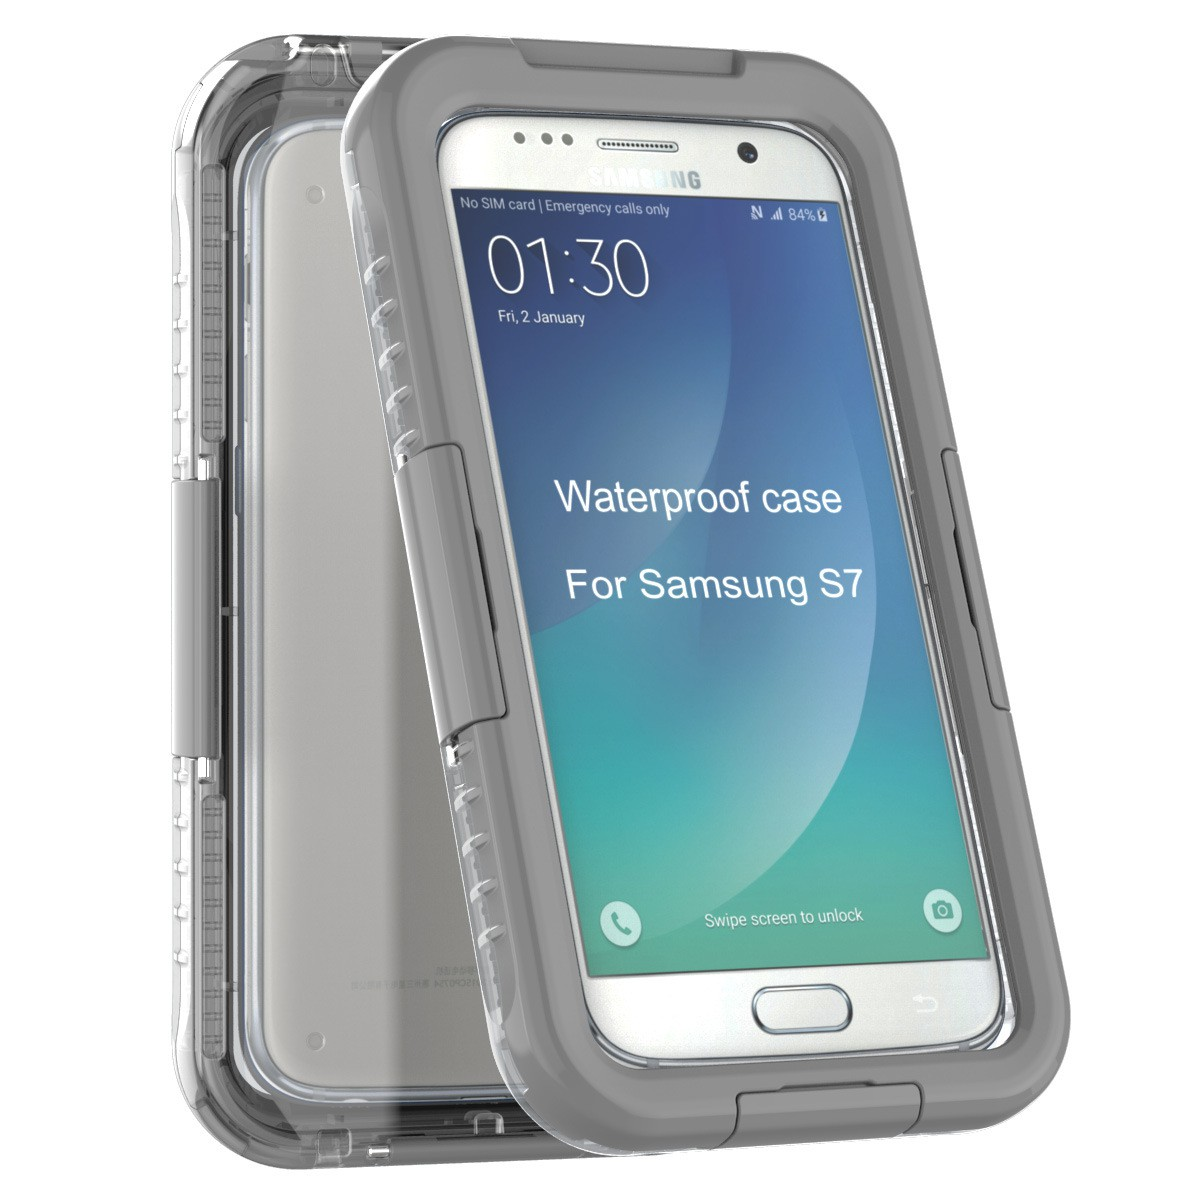 Yemota Pro Waterproof Case Samsung Galaxy S7 - Grau